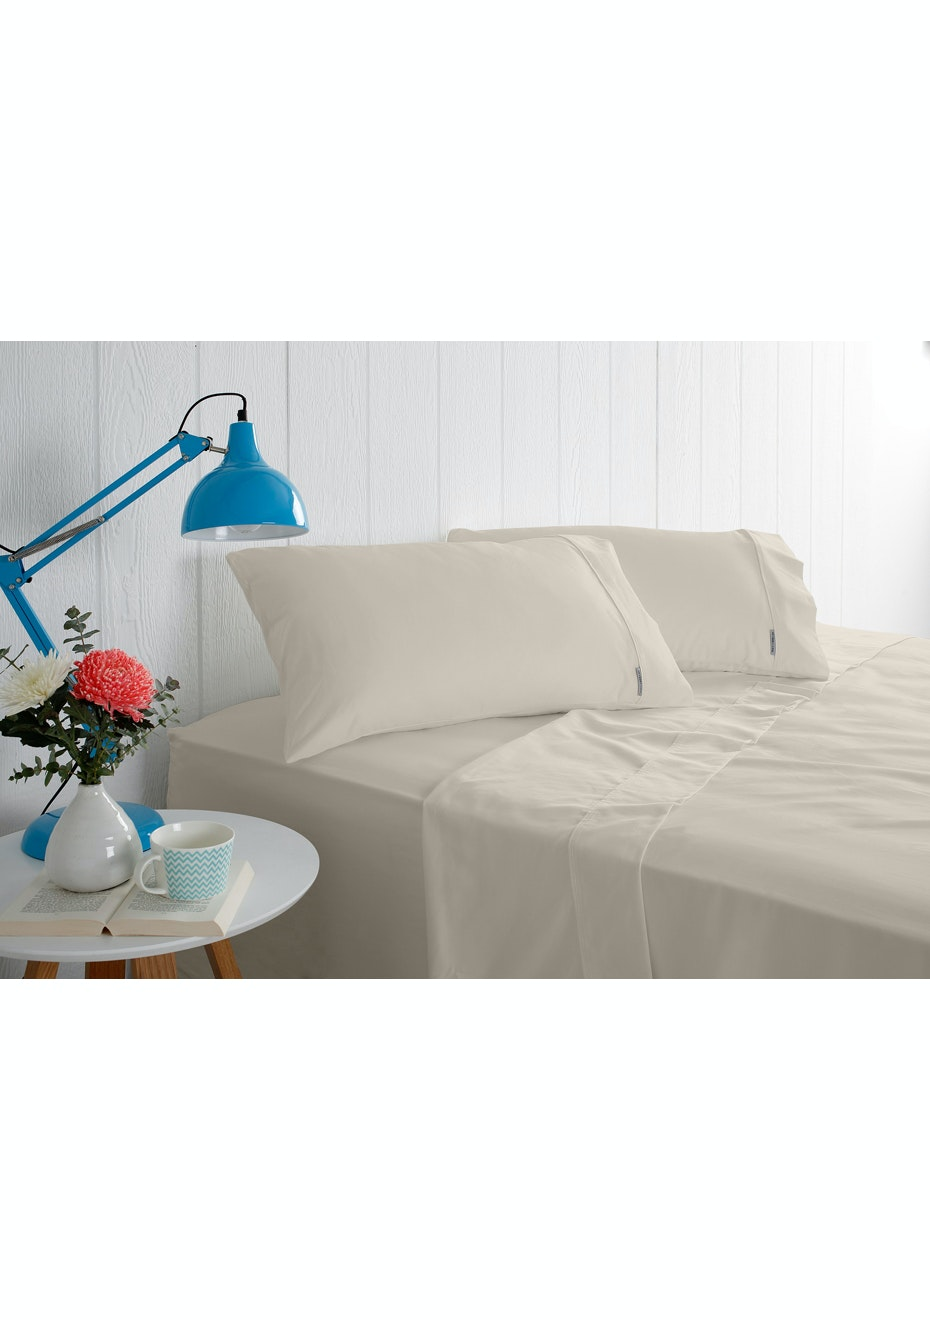 Odyssey Living 1000 Thread Count - Cotton Rich Solid Sateen - Linen - Queen Bed